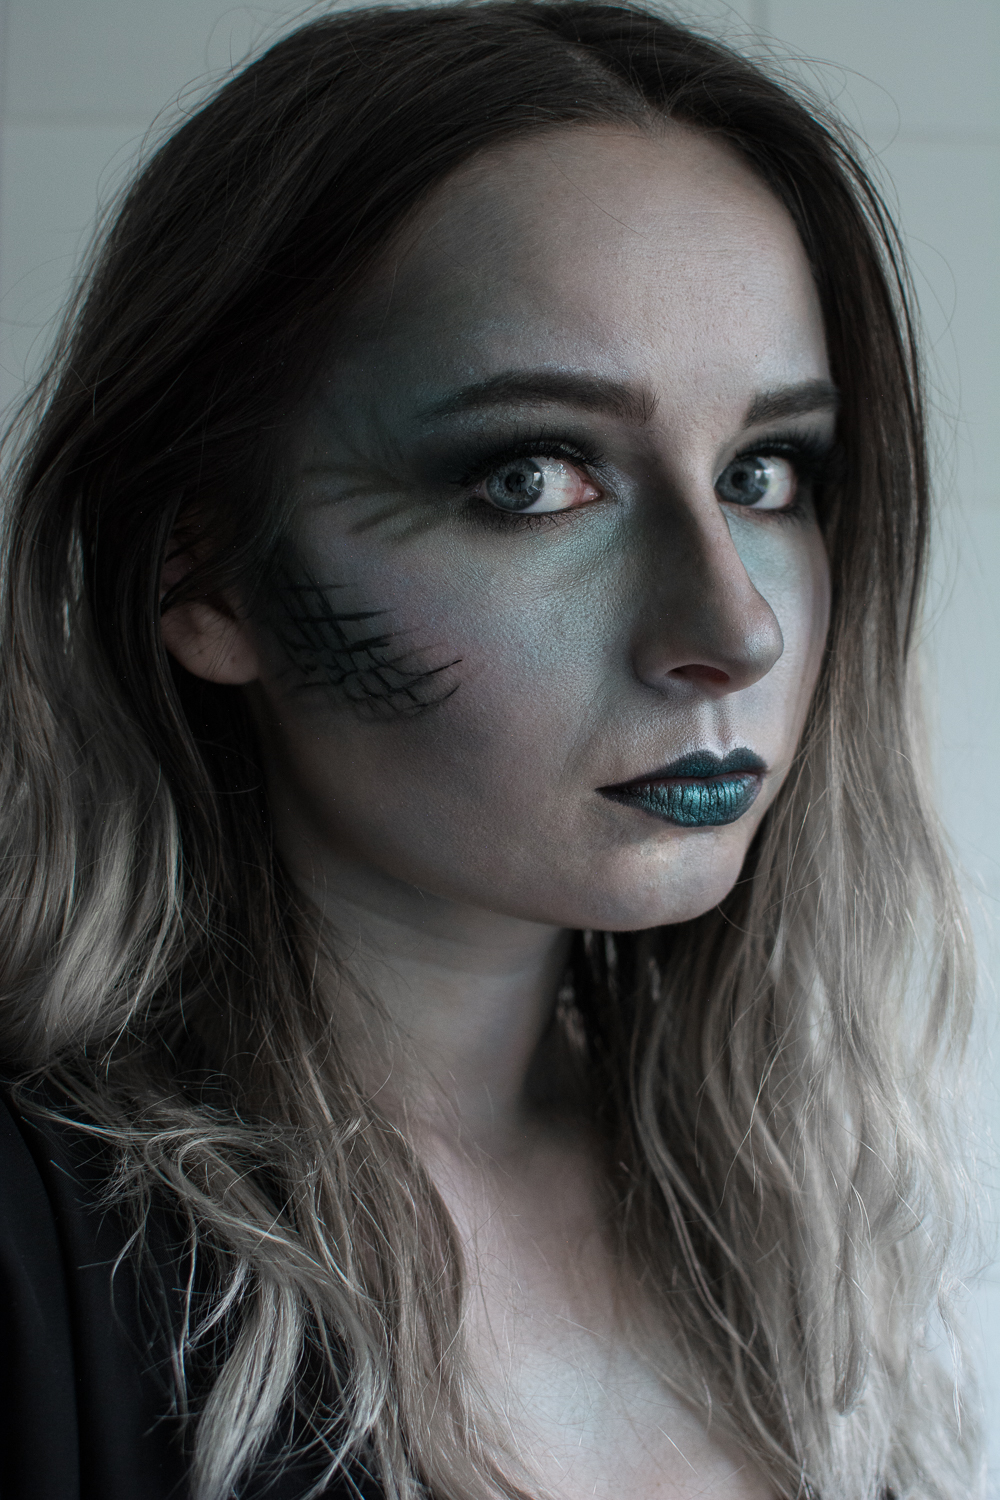 Ghost Evil Mermaid Makeup Halloween Tutorial Video